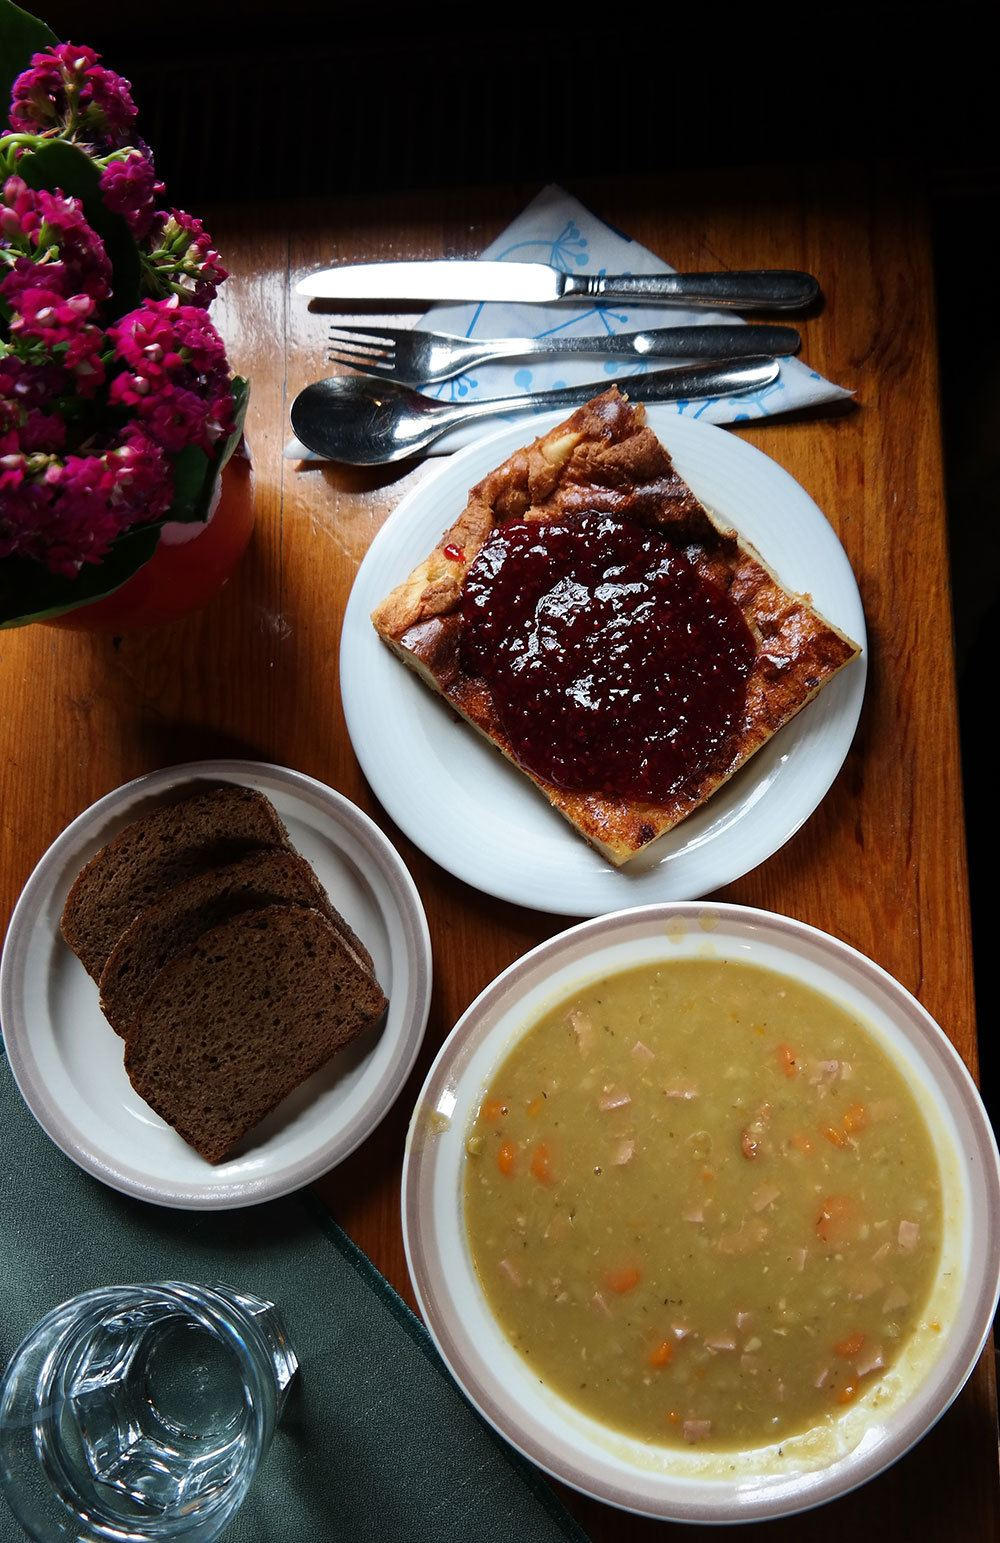 Pea soup and pancakes in Turku, Finland. Travel photo by Katja Presnal | @skimbaco